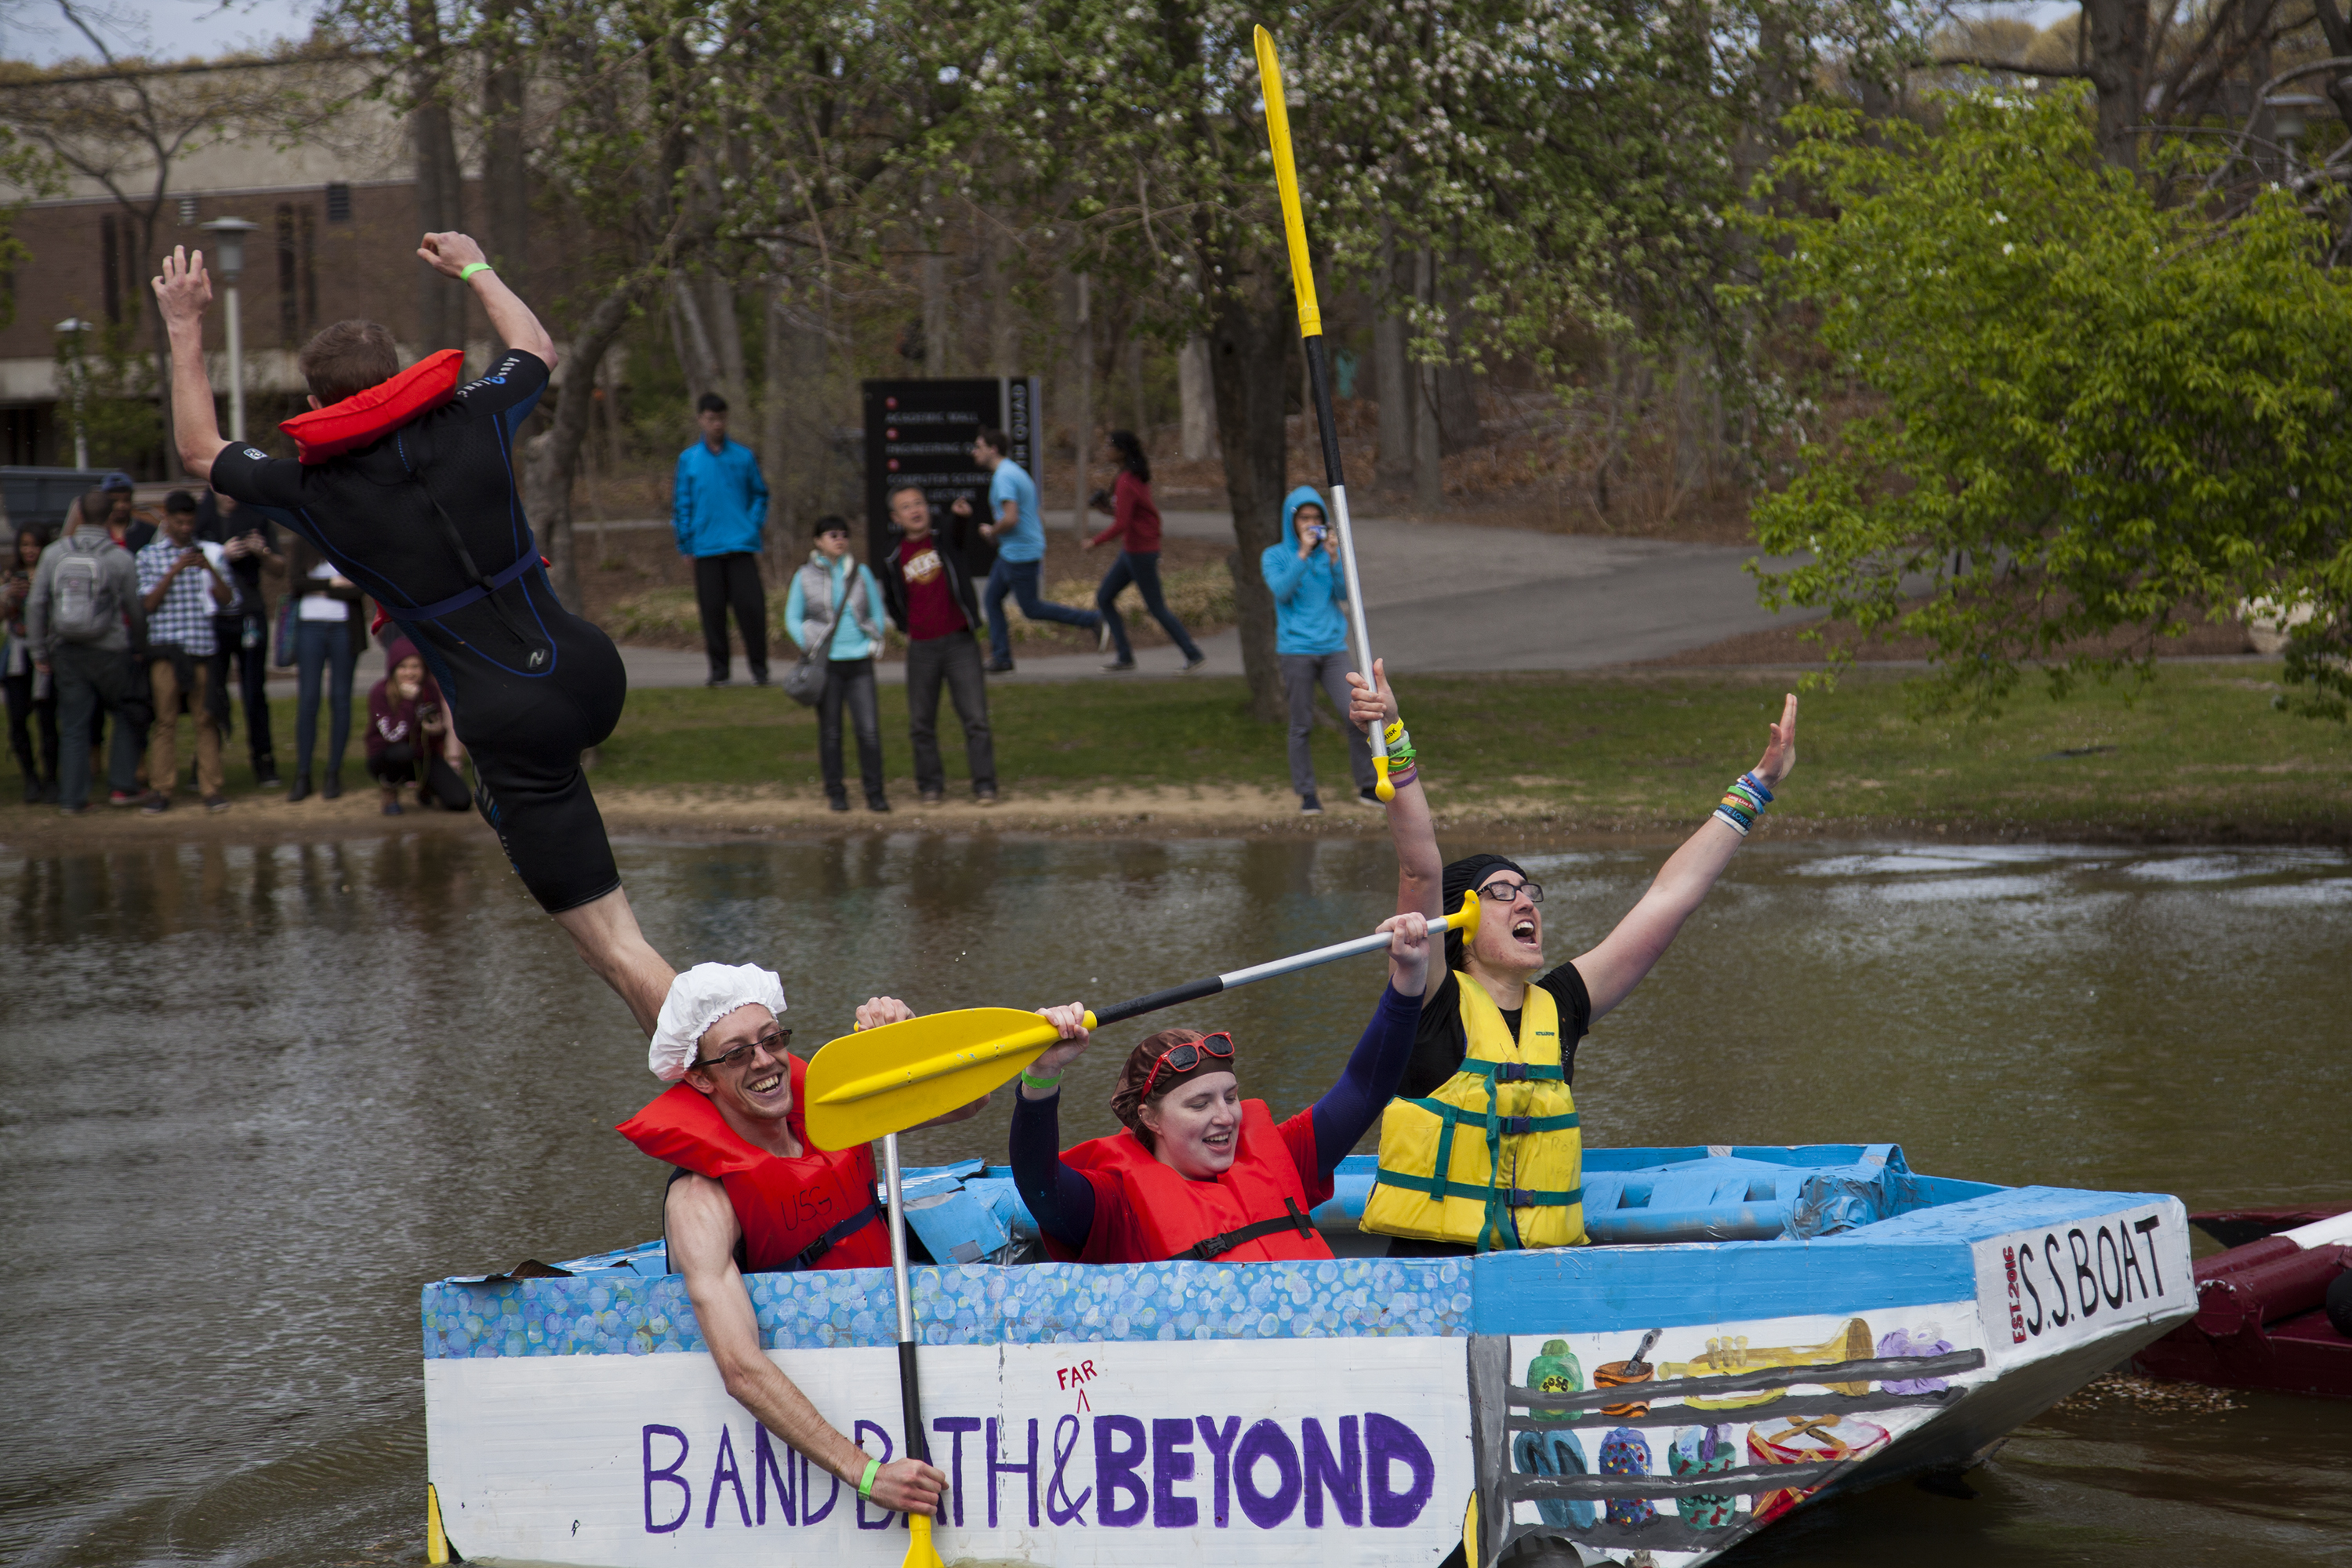 Stony Brook University students celebrate winning a heat at Roth Regatta on April 29, 2016. <em>ERIC SCHMID/STATESMAN FILE</em>